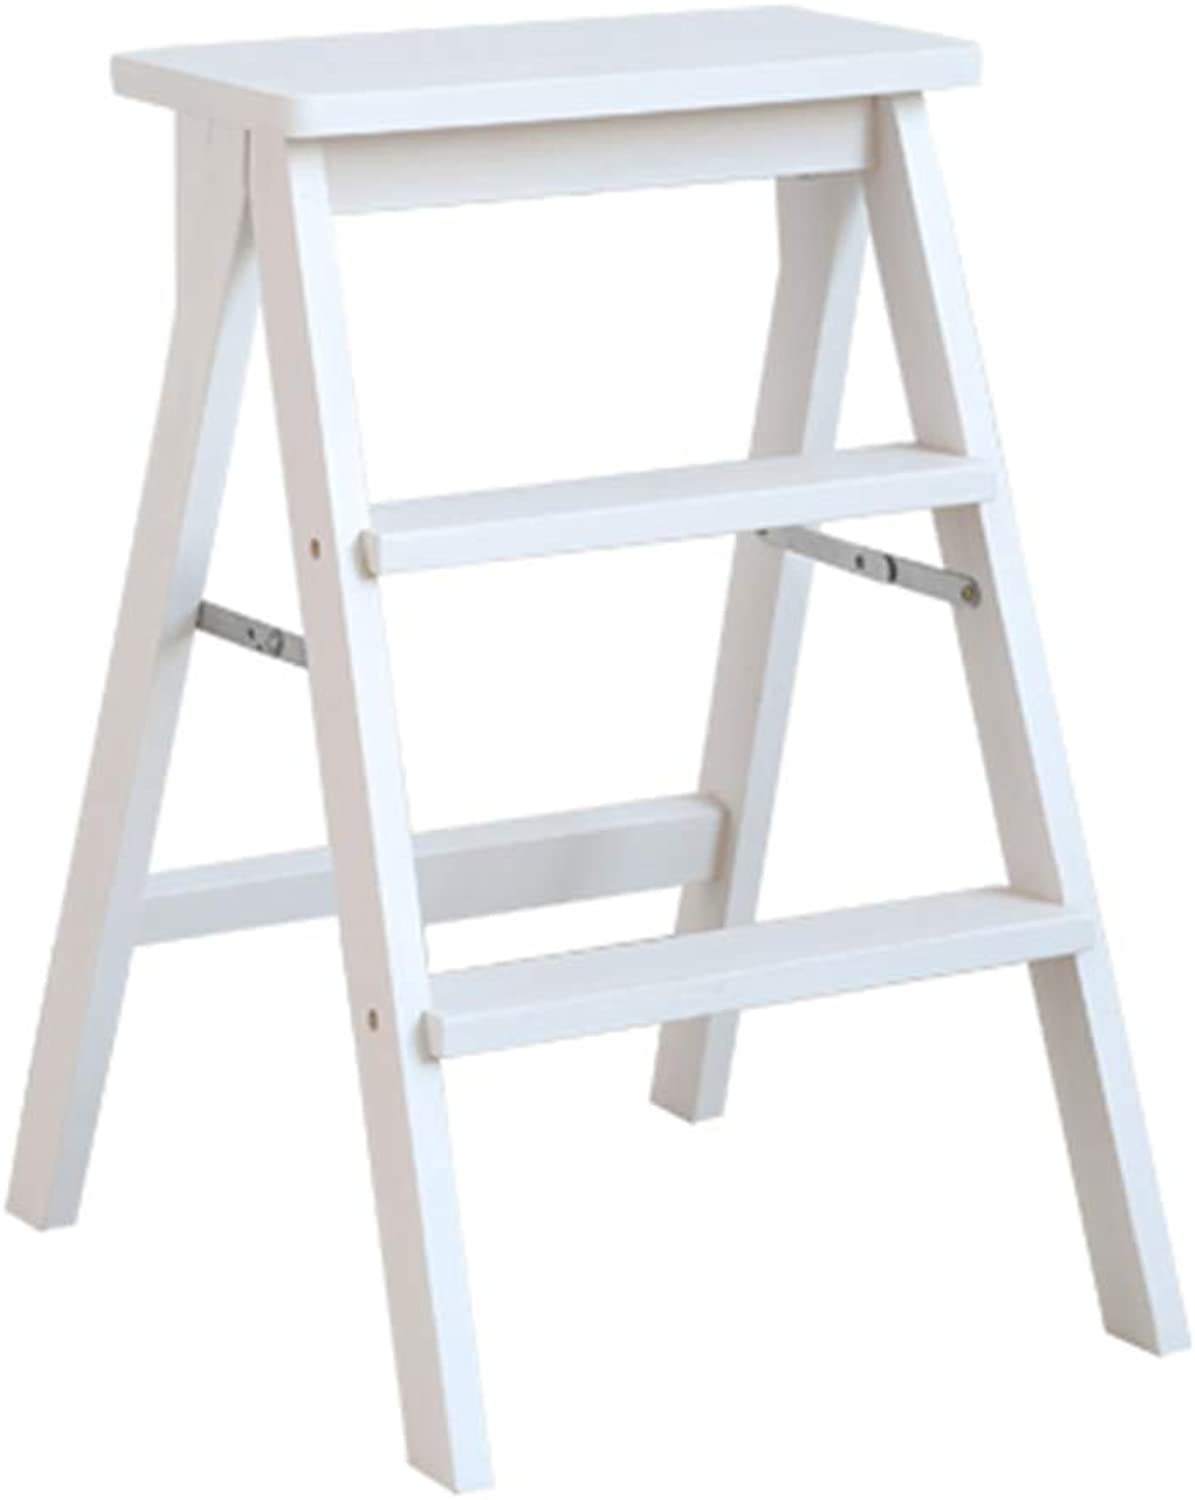 ZHAOYONGLI Stools Footstool Step Stools Dining Ladder Solid Wood Folding Chair Herringbone Ladder Home Multi-Function Ladder Stool Climbing Ladder Creative Solid Durable Long Lasting (color   White)